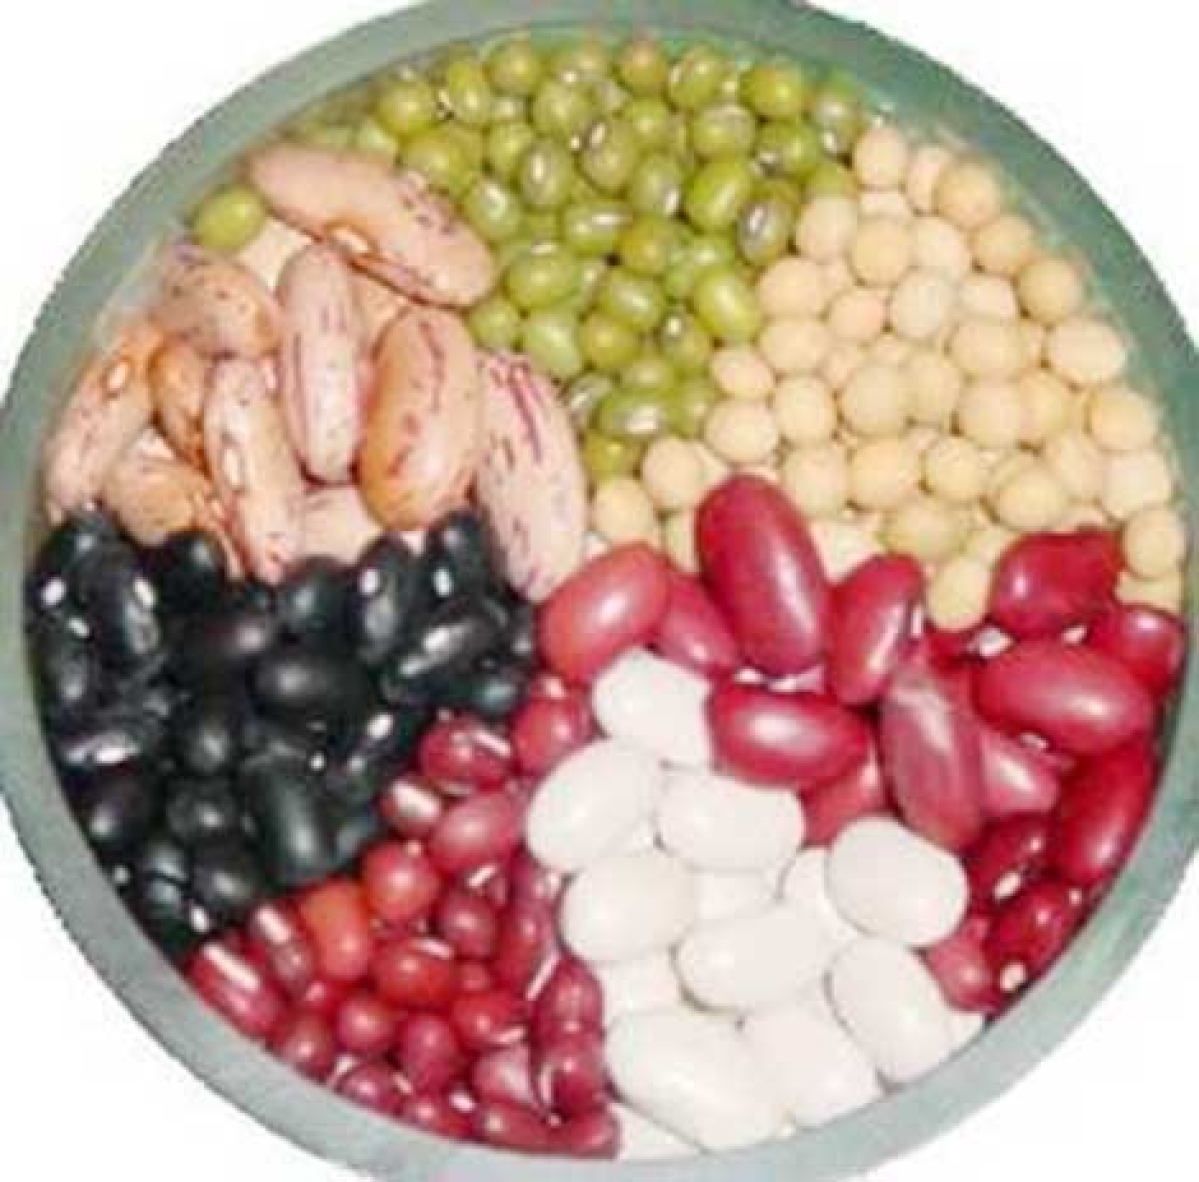 PULSES PROVIDE EASY-TO-COOK WEIGHT LOSS RECIPE: STUDY